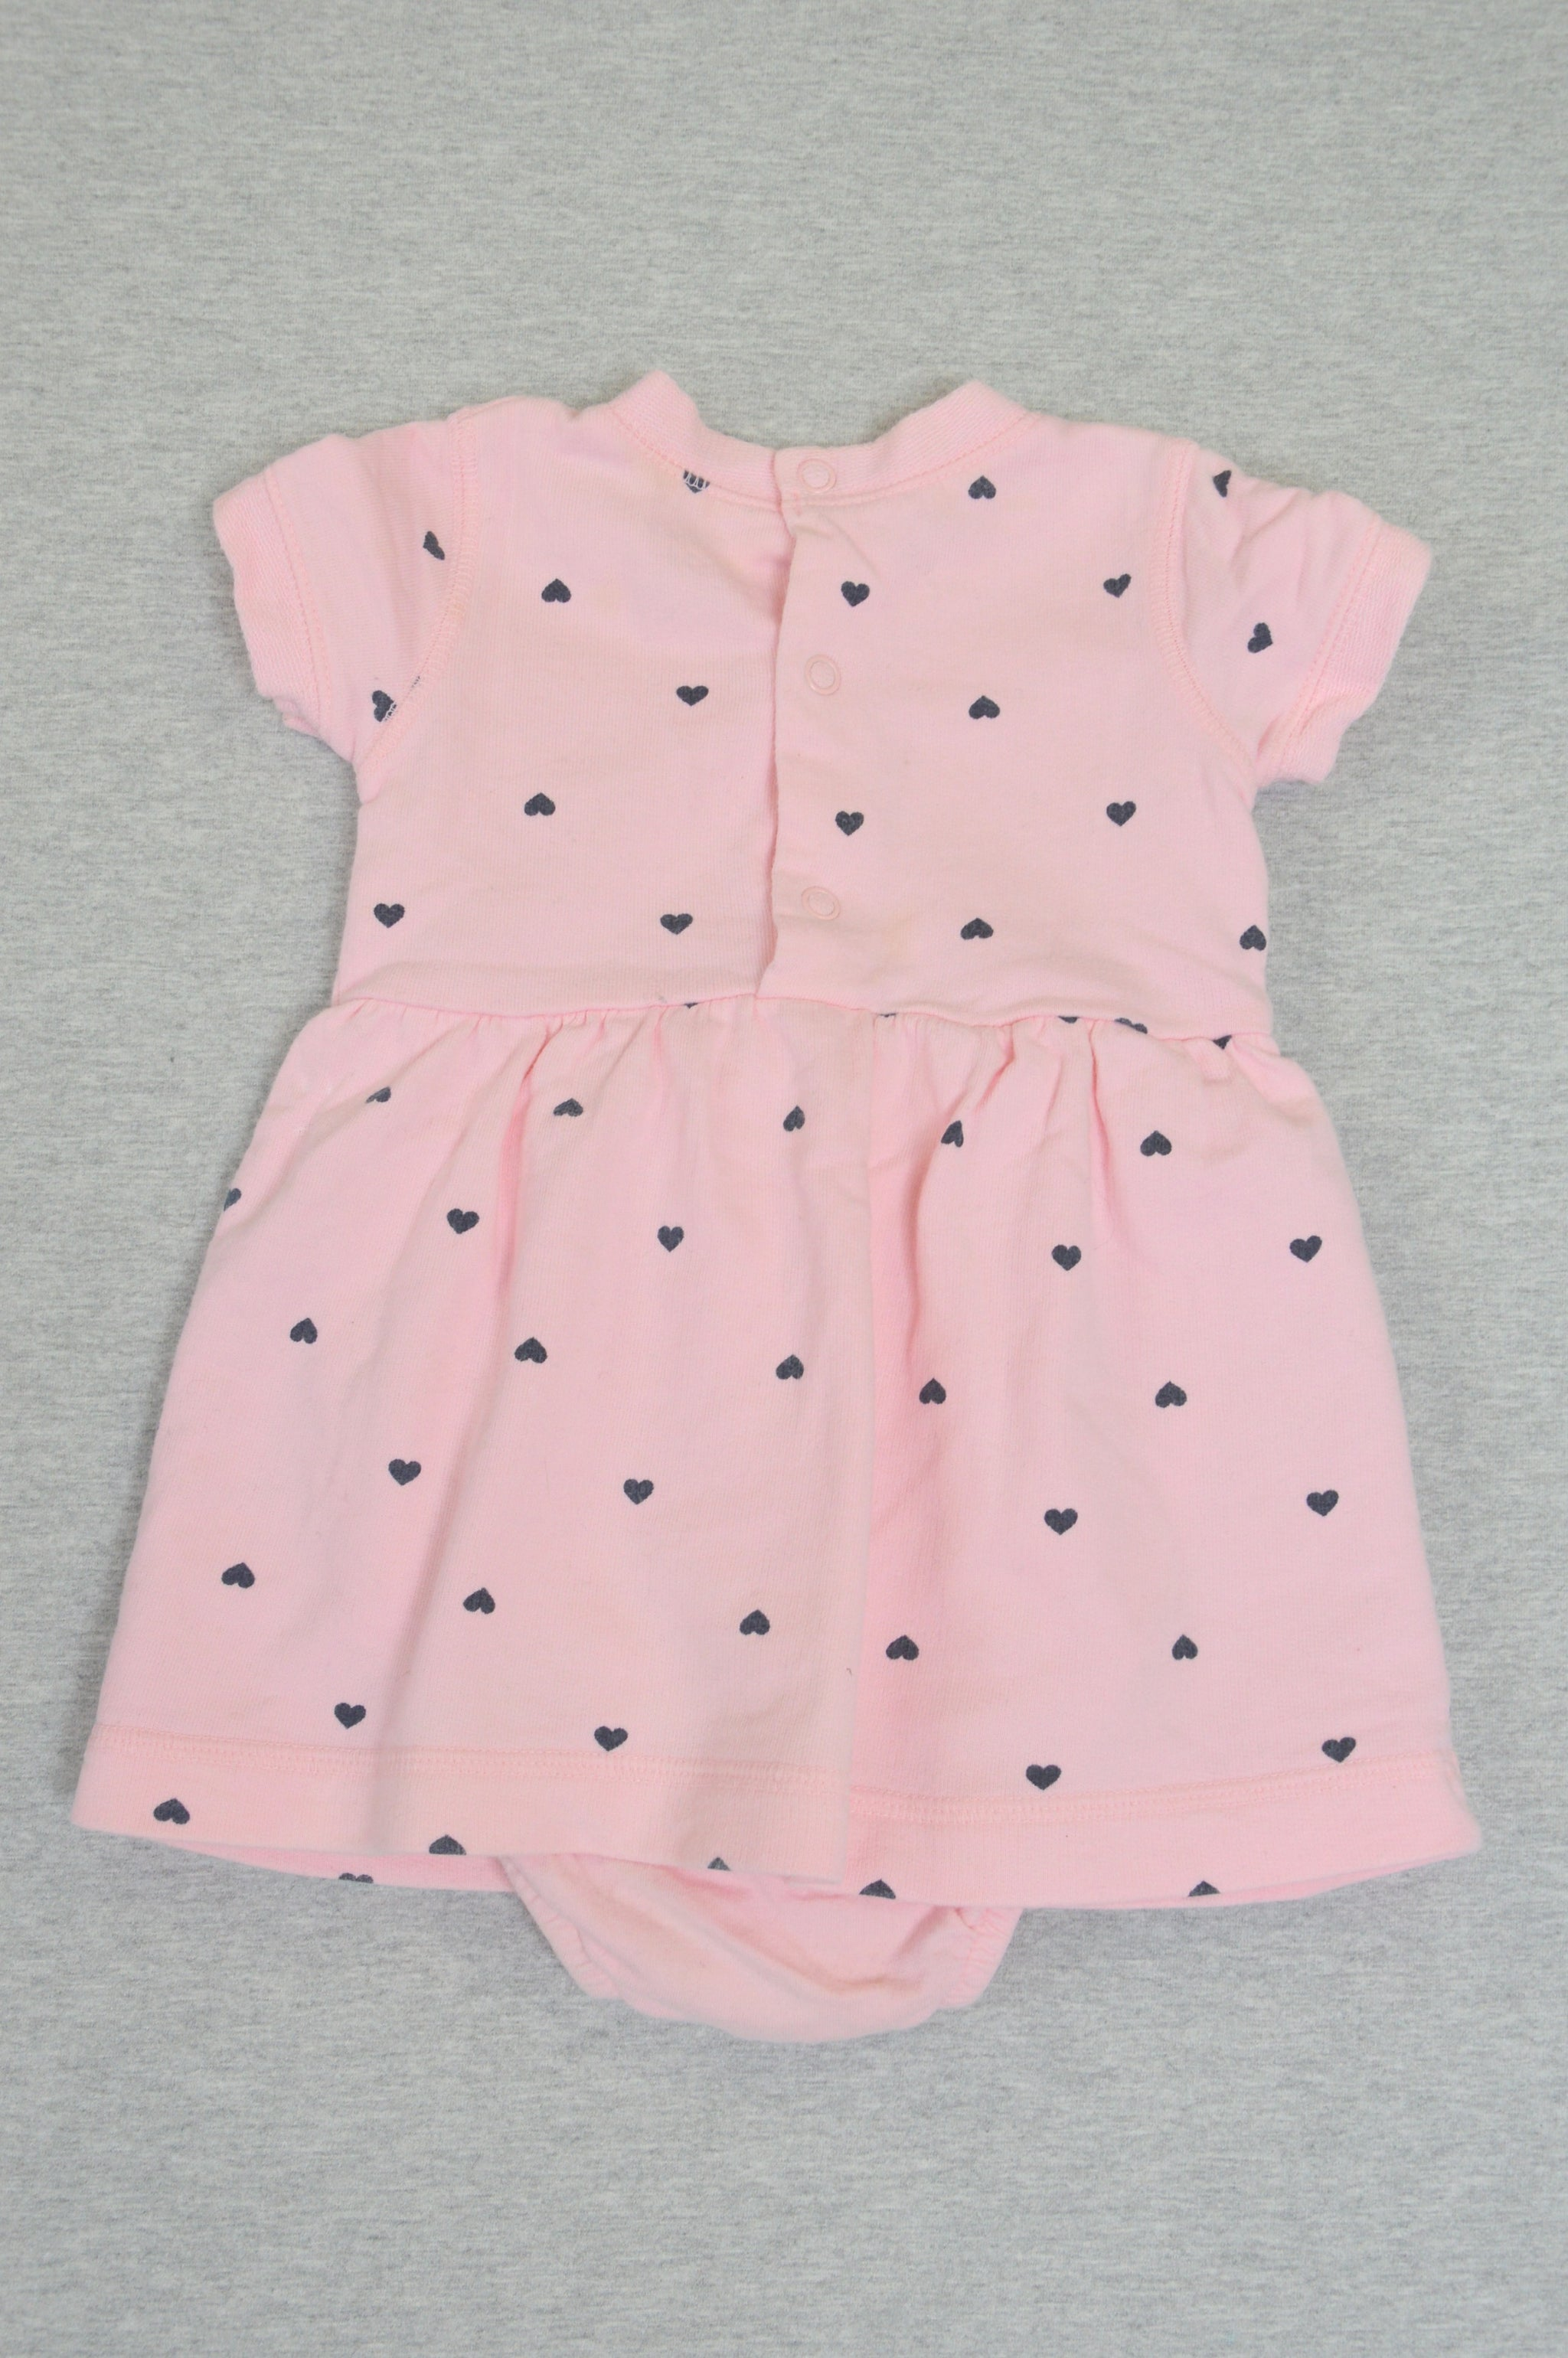 aa33b5fa6 Carter's pink heart onesie dress, size 12m - Charlie & Flo's